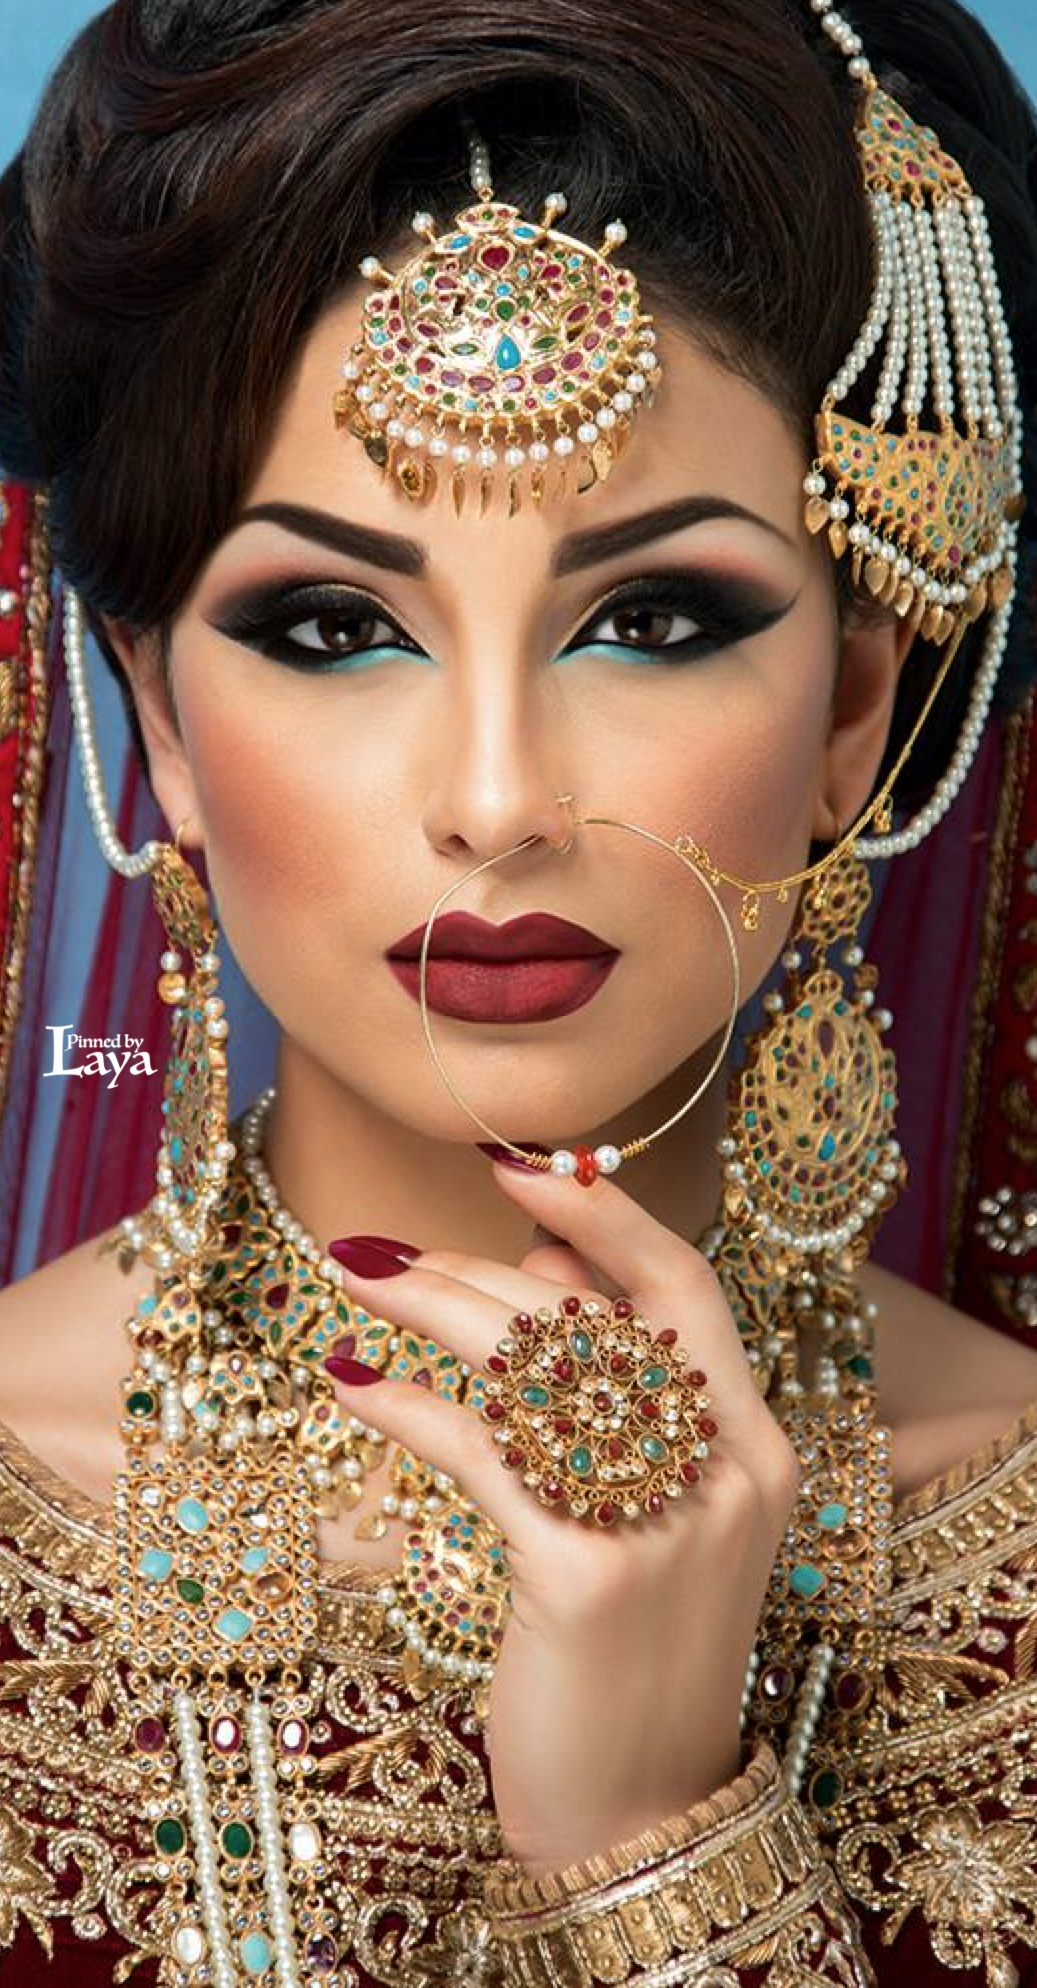 Pin By Label Shrena Hirawat On Beauty, Hair, Makeup | Pinterest with Bridal Makeup Pictures India